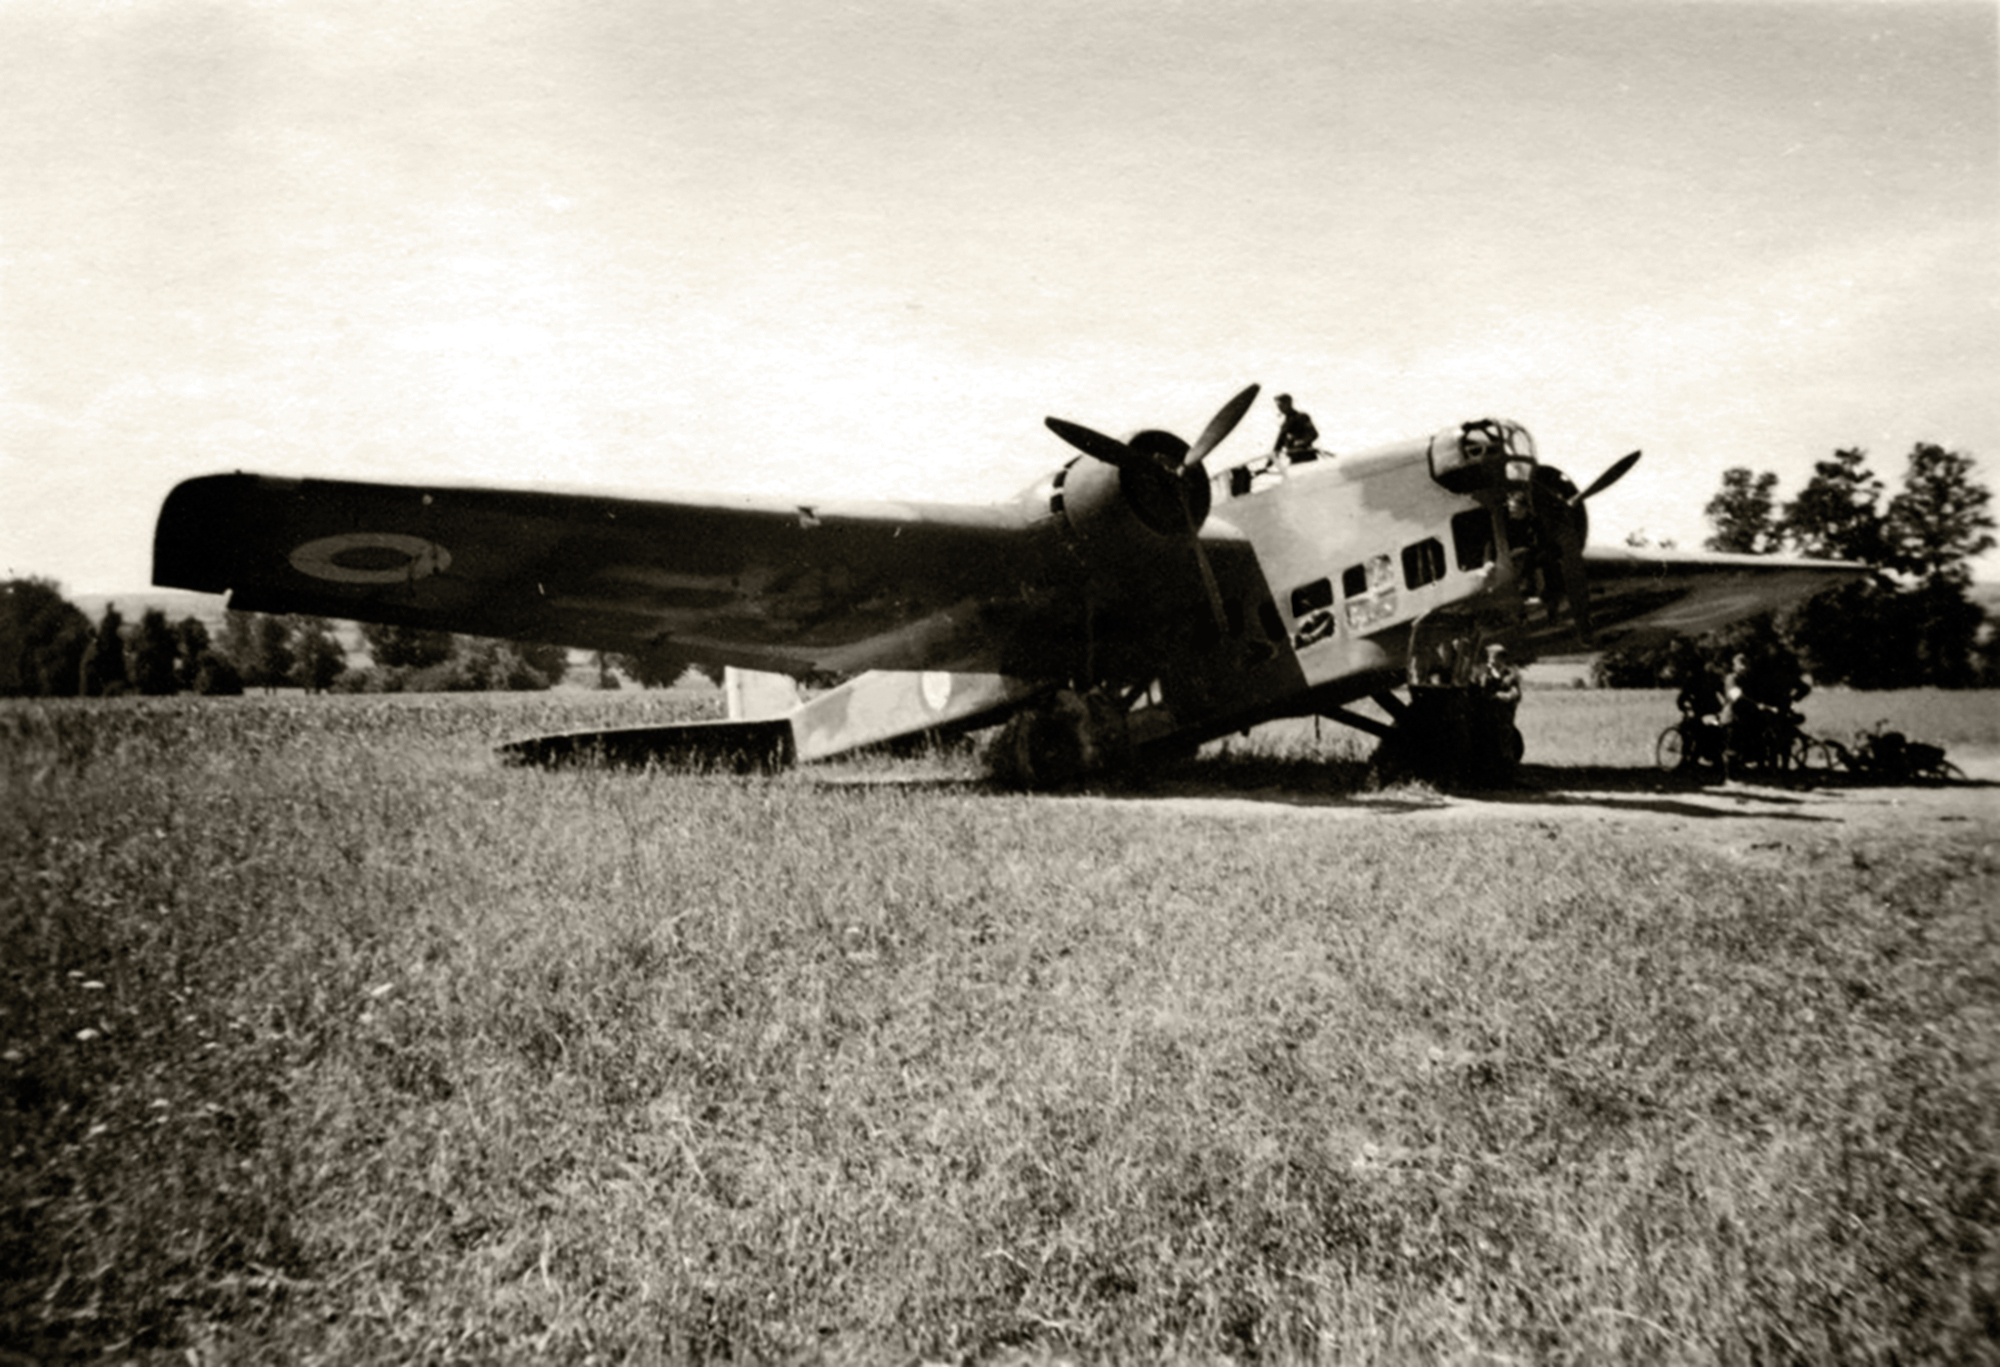 French Airforce Amiot 143 sits abandoned after the fall of France June 1940 ebay 01